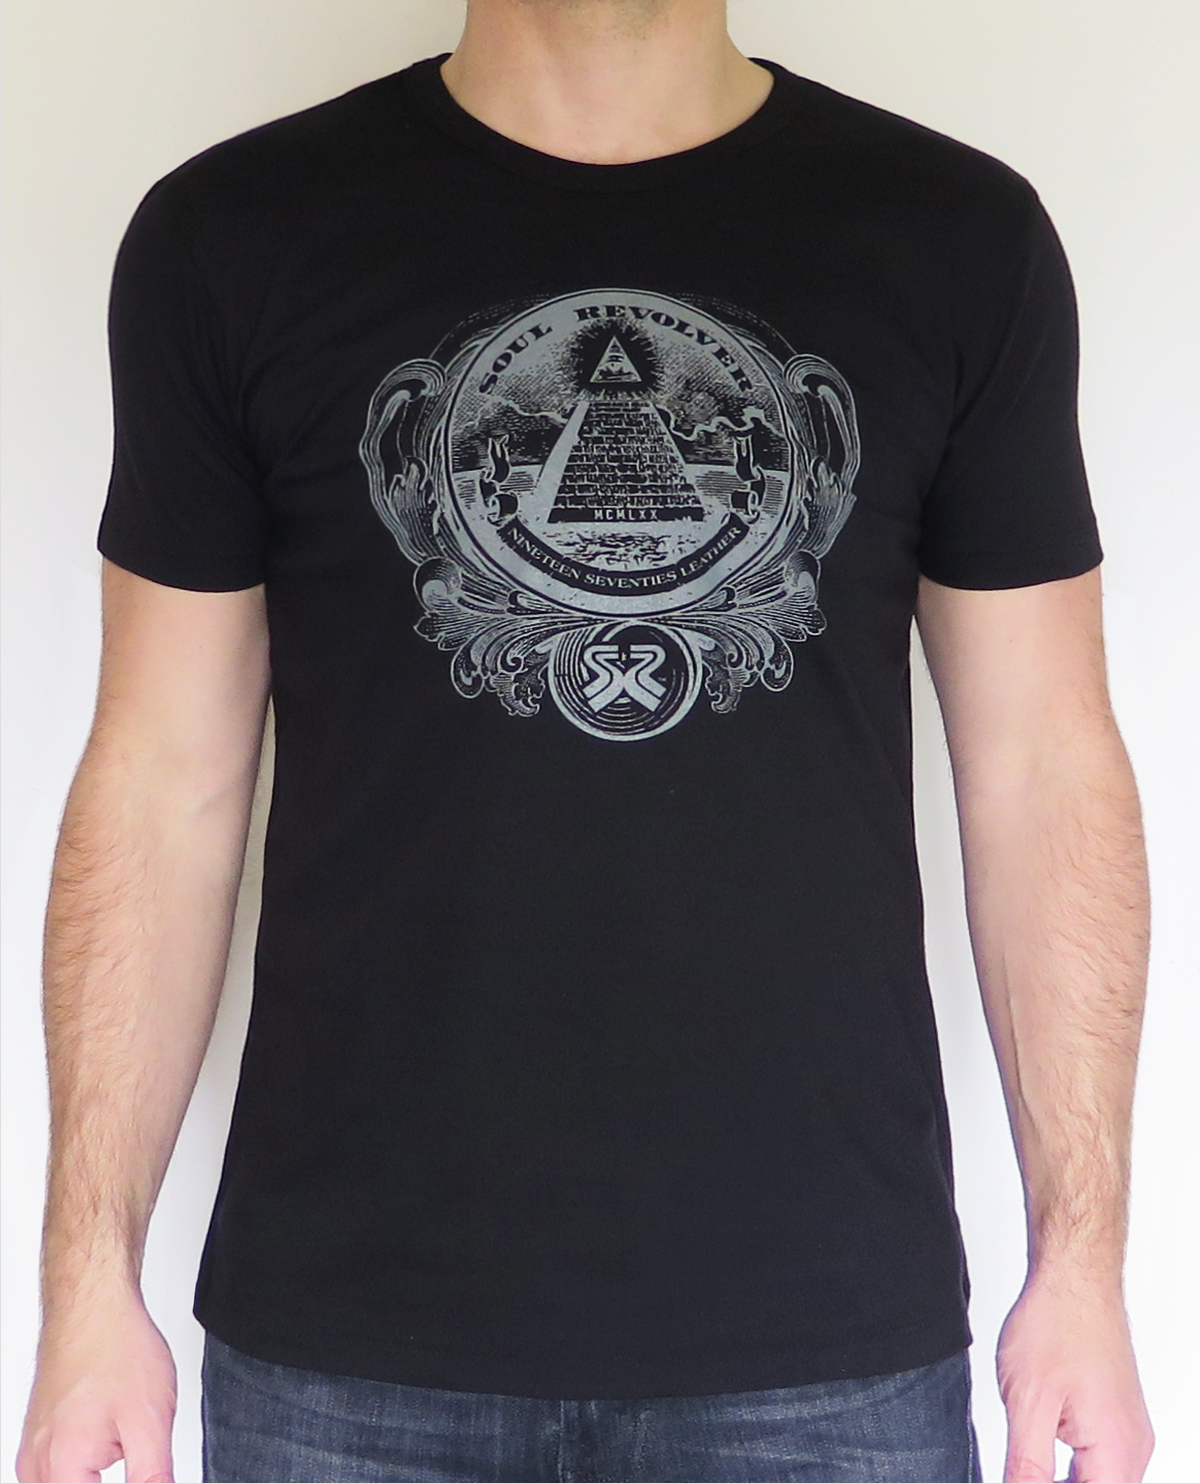 Men 39 s fitted black pyramid design t shirt by soul revolver for Black pyramid t shirts for sale